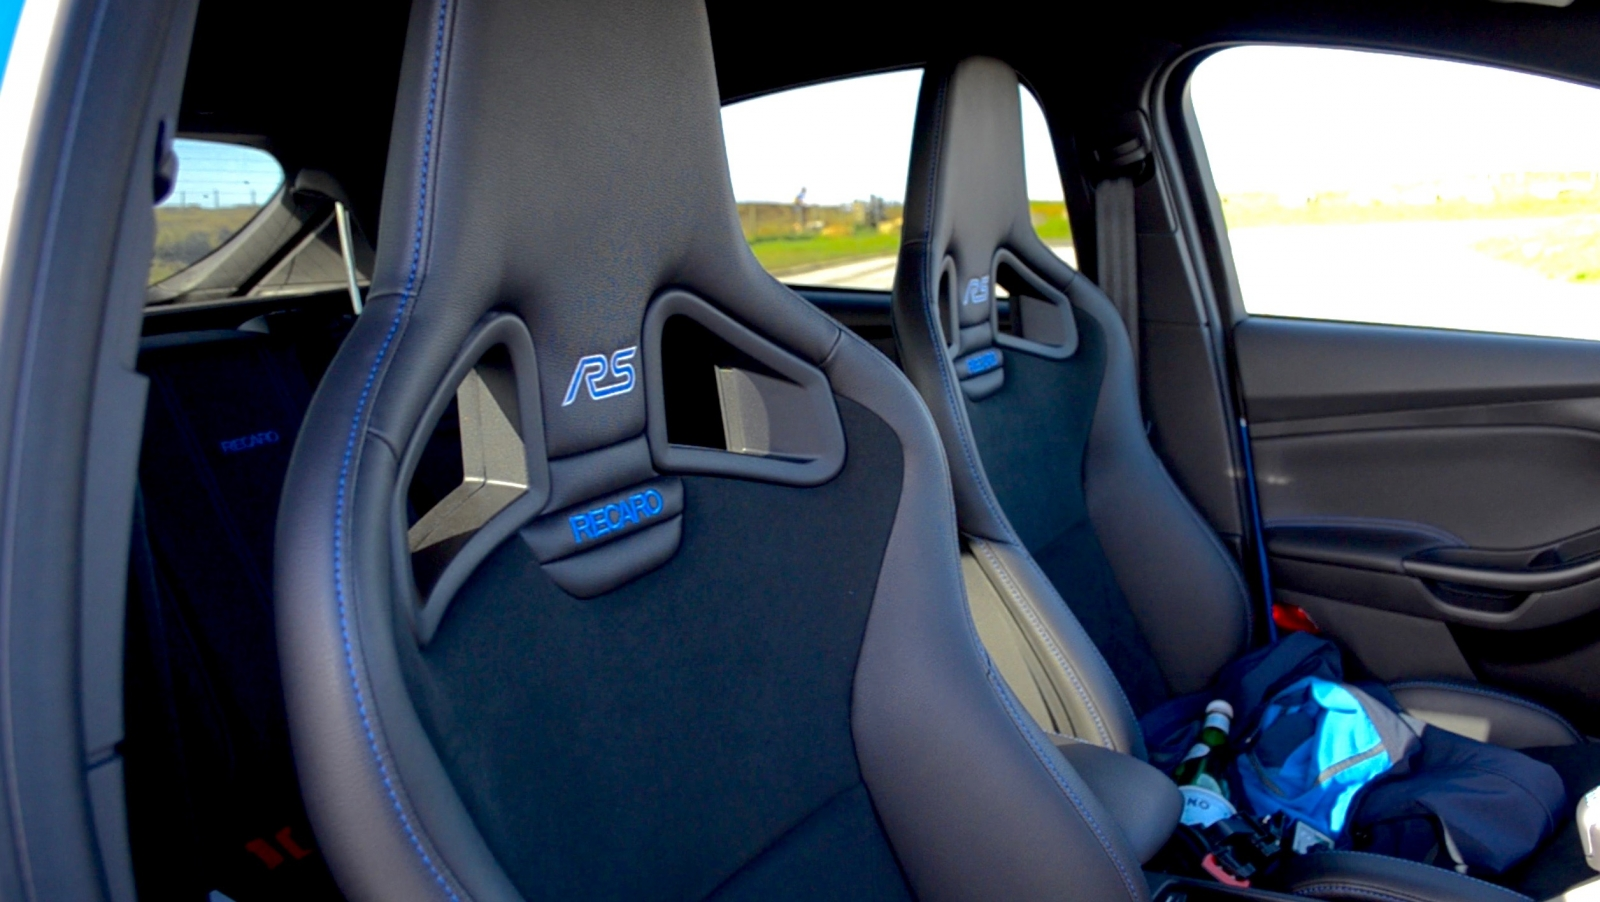 Ford Focus RS seats